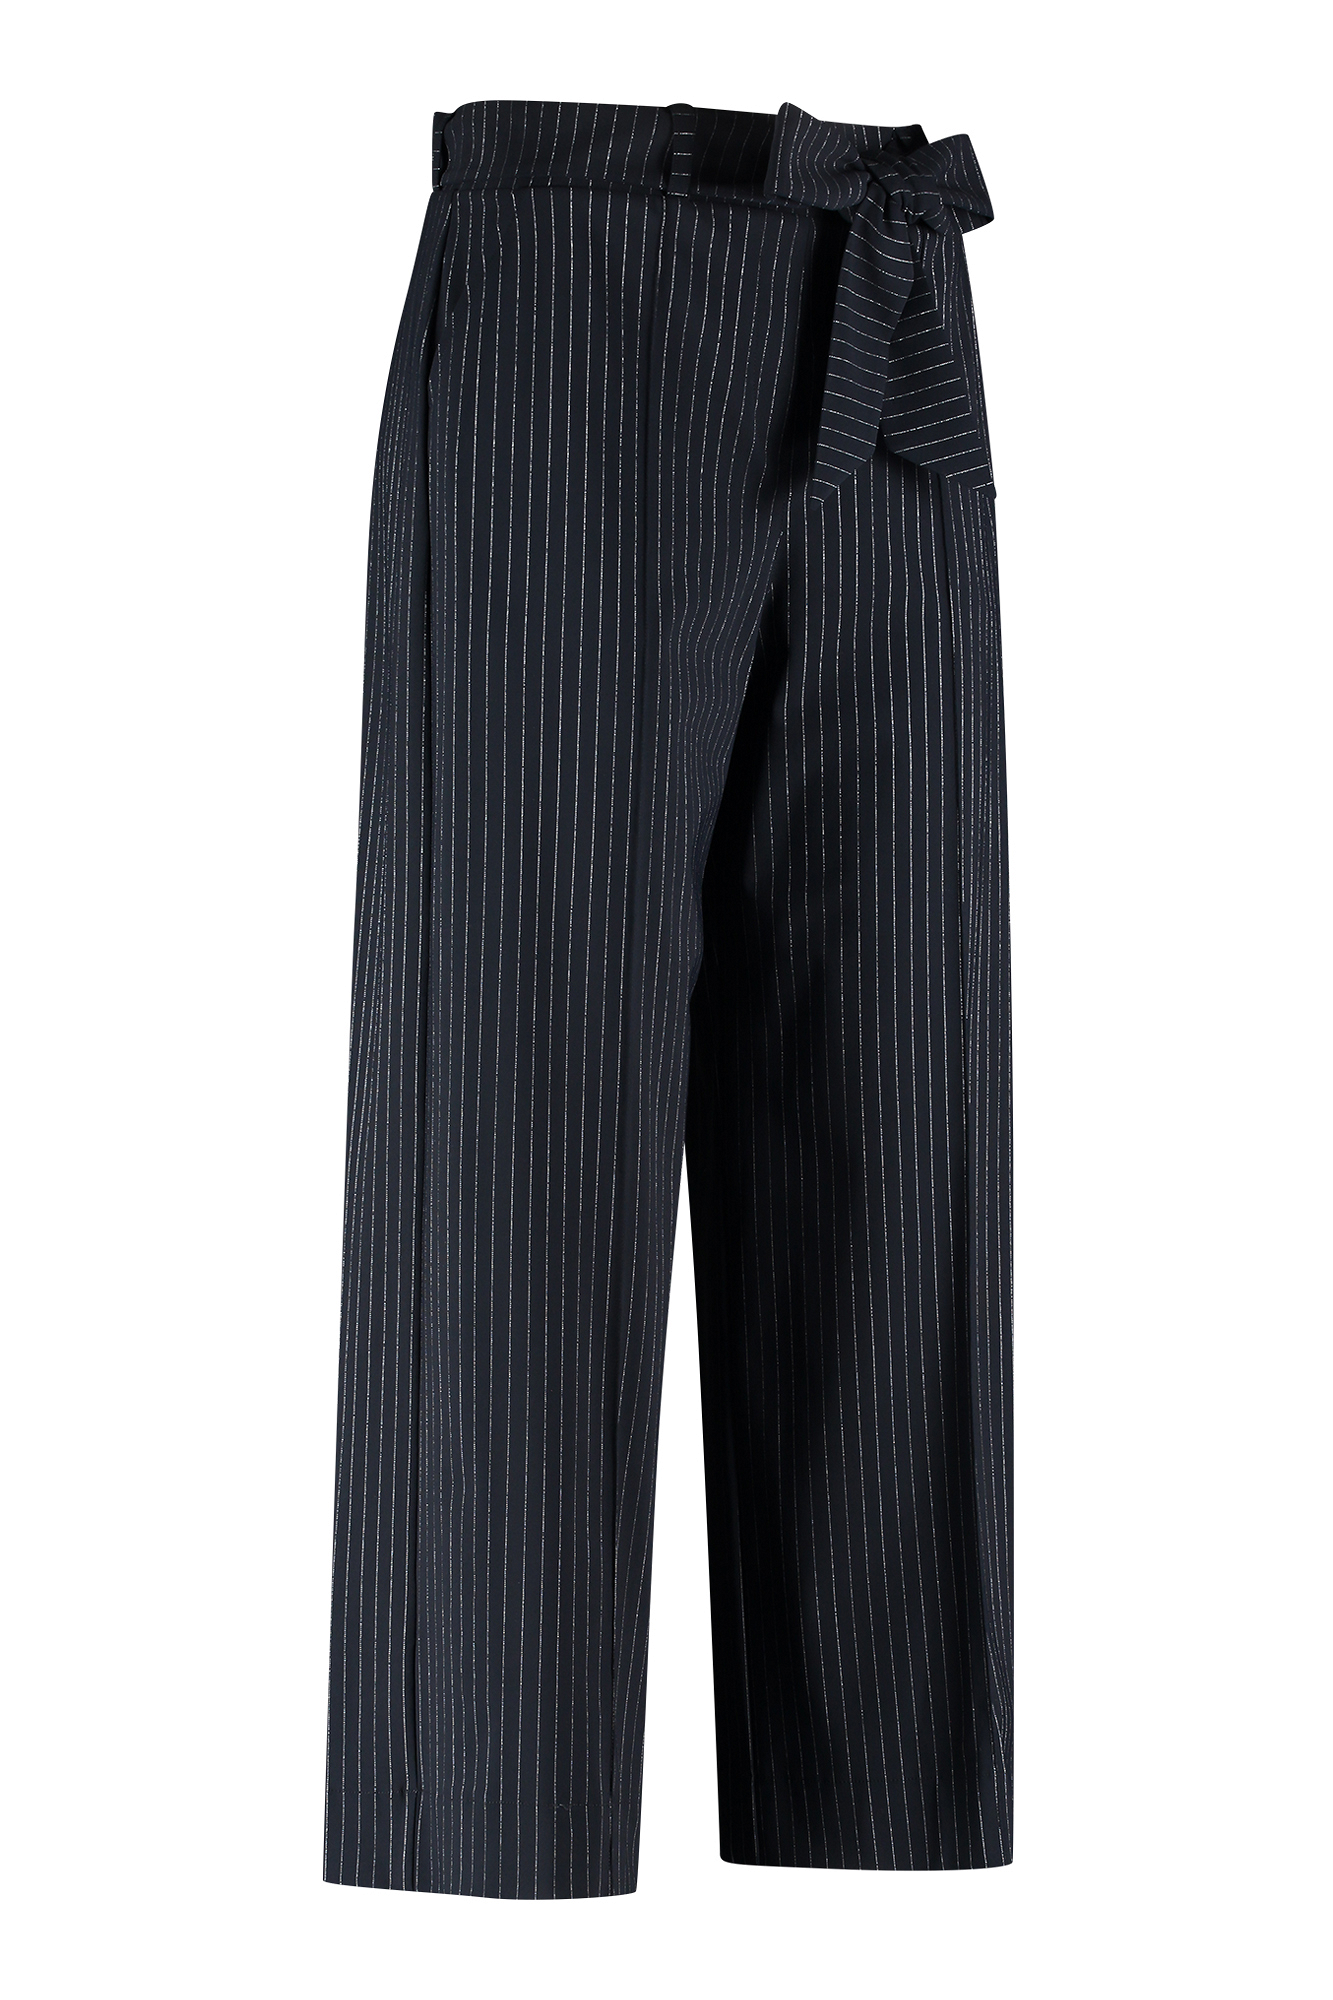 Charlotte pinstripe trousers